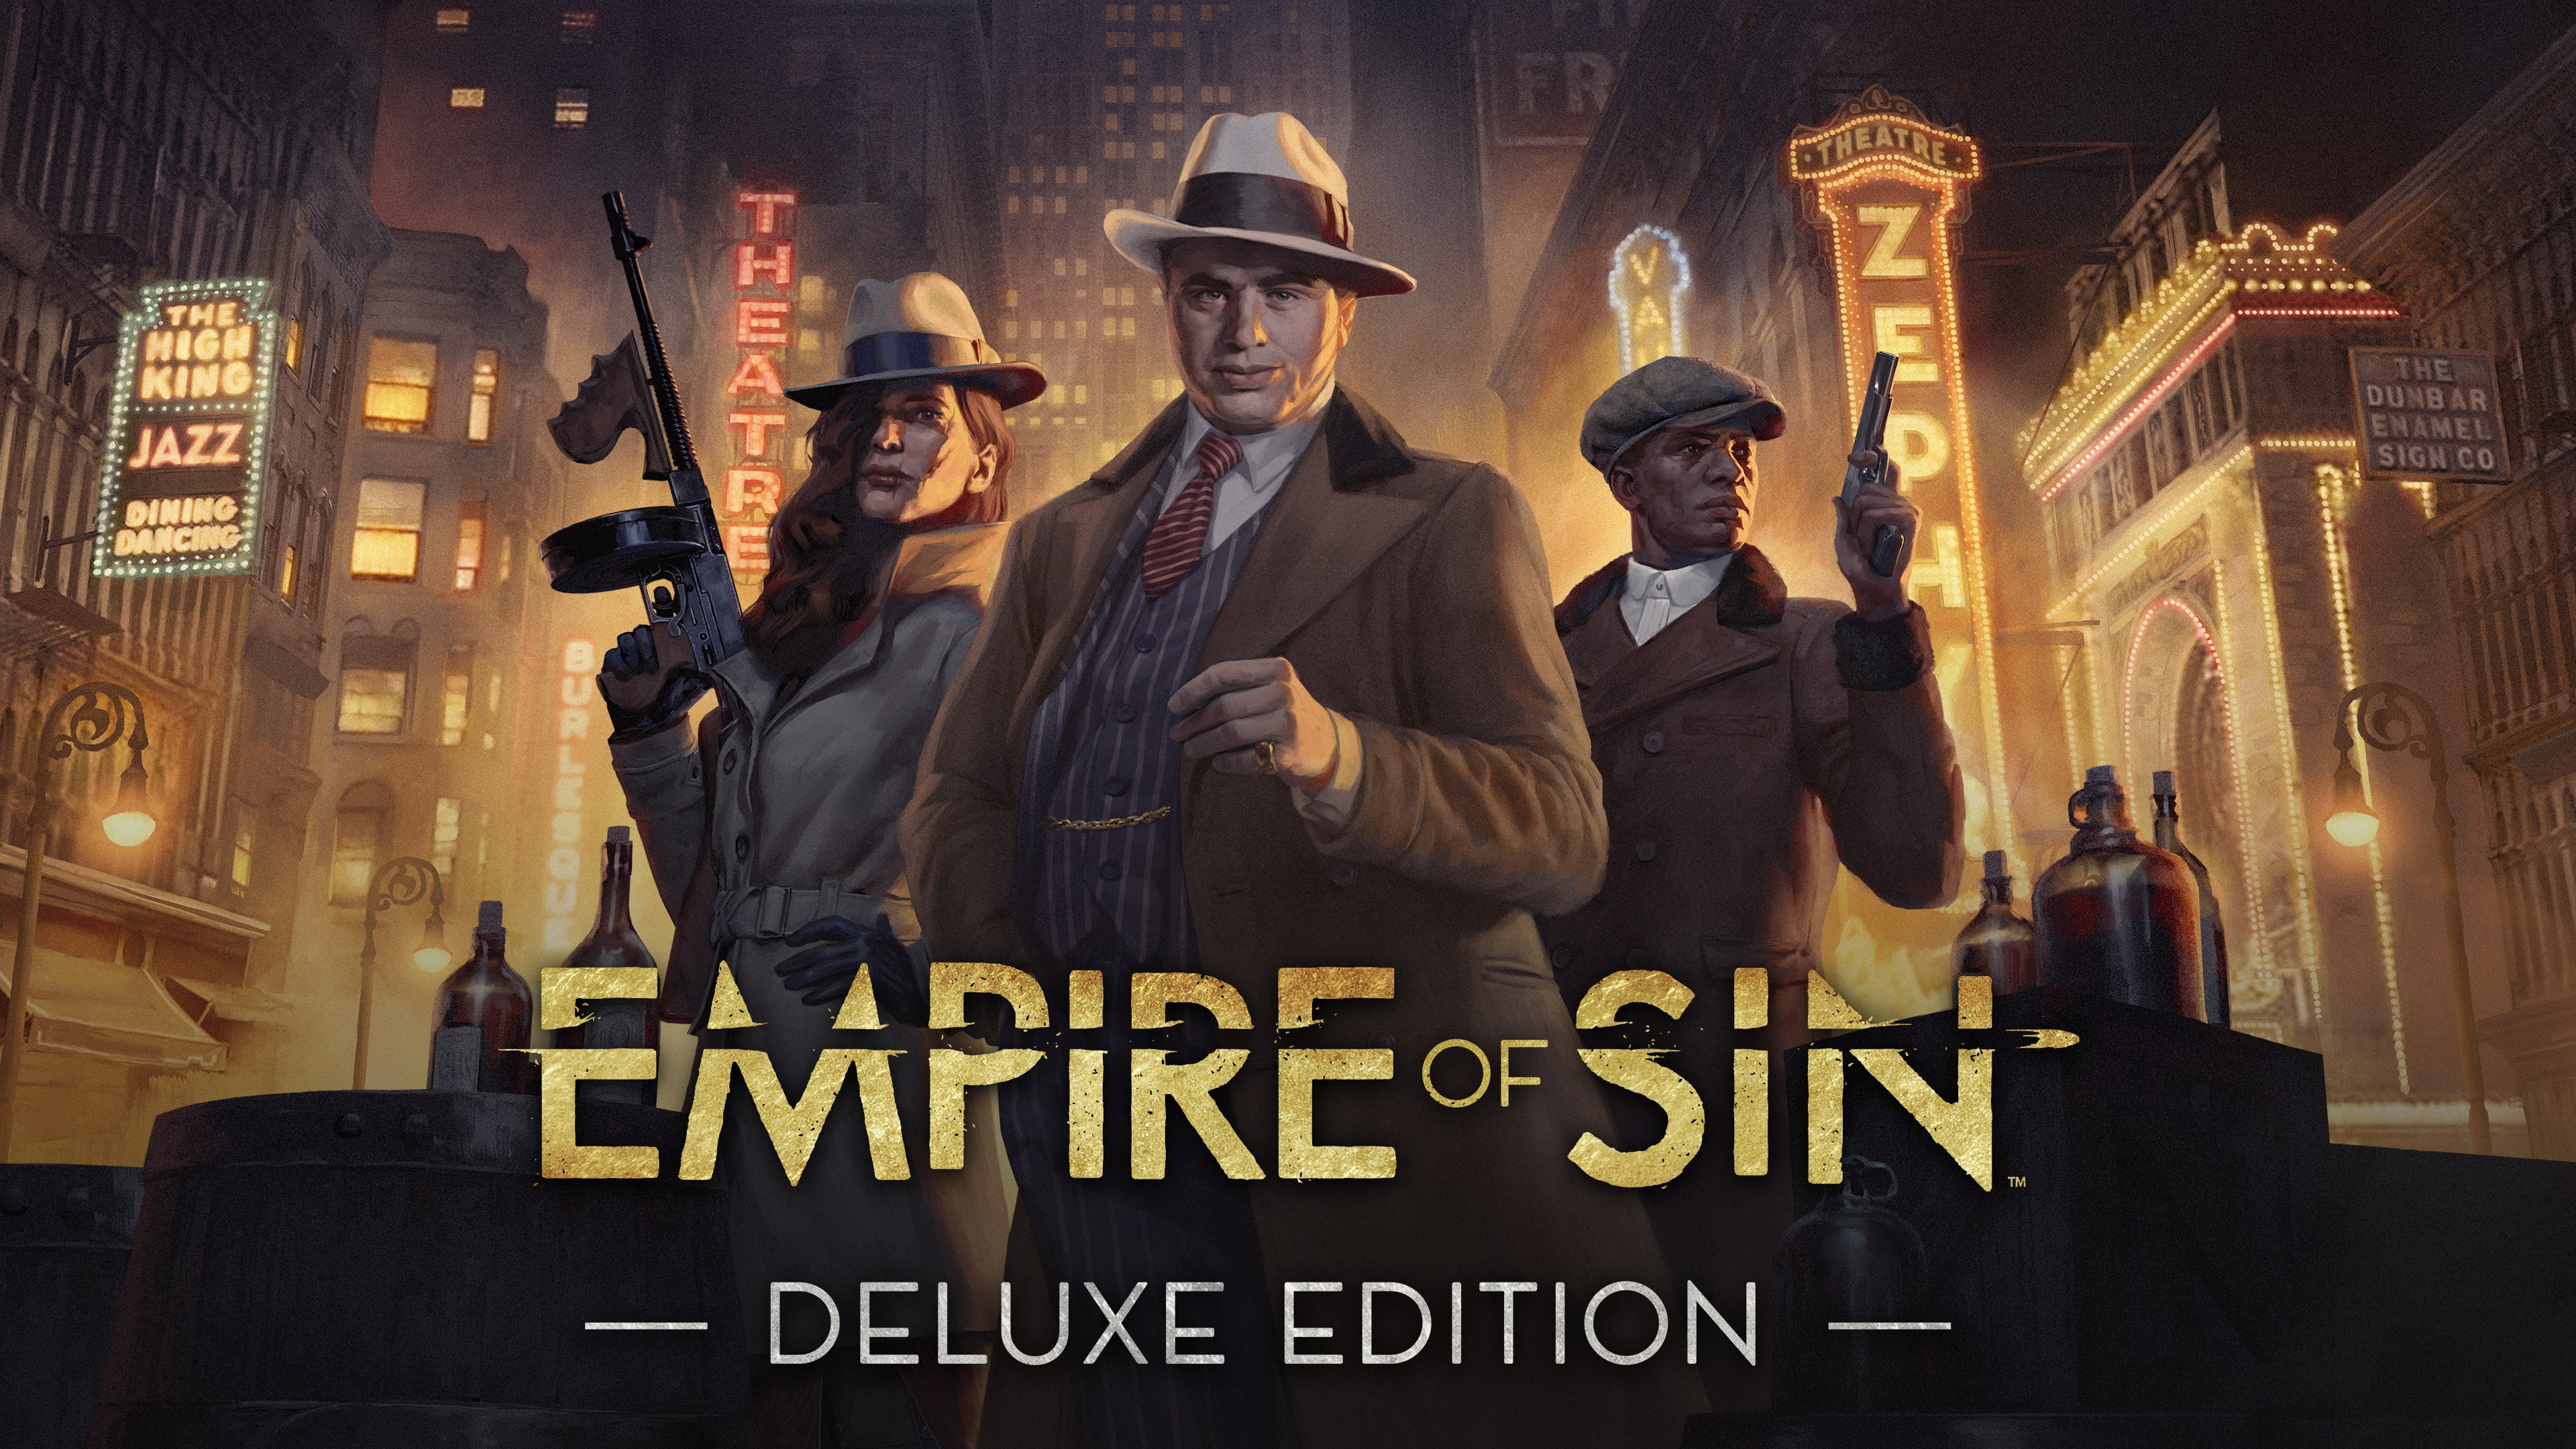 Empire of Sin - Deluxe Edition Pre-Order